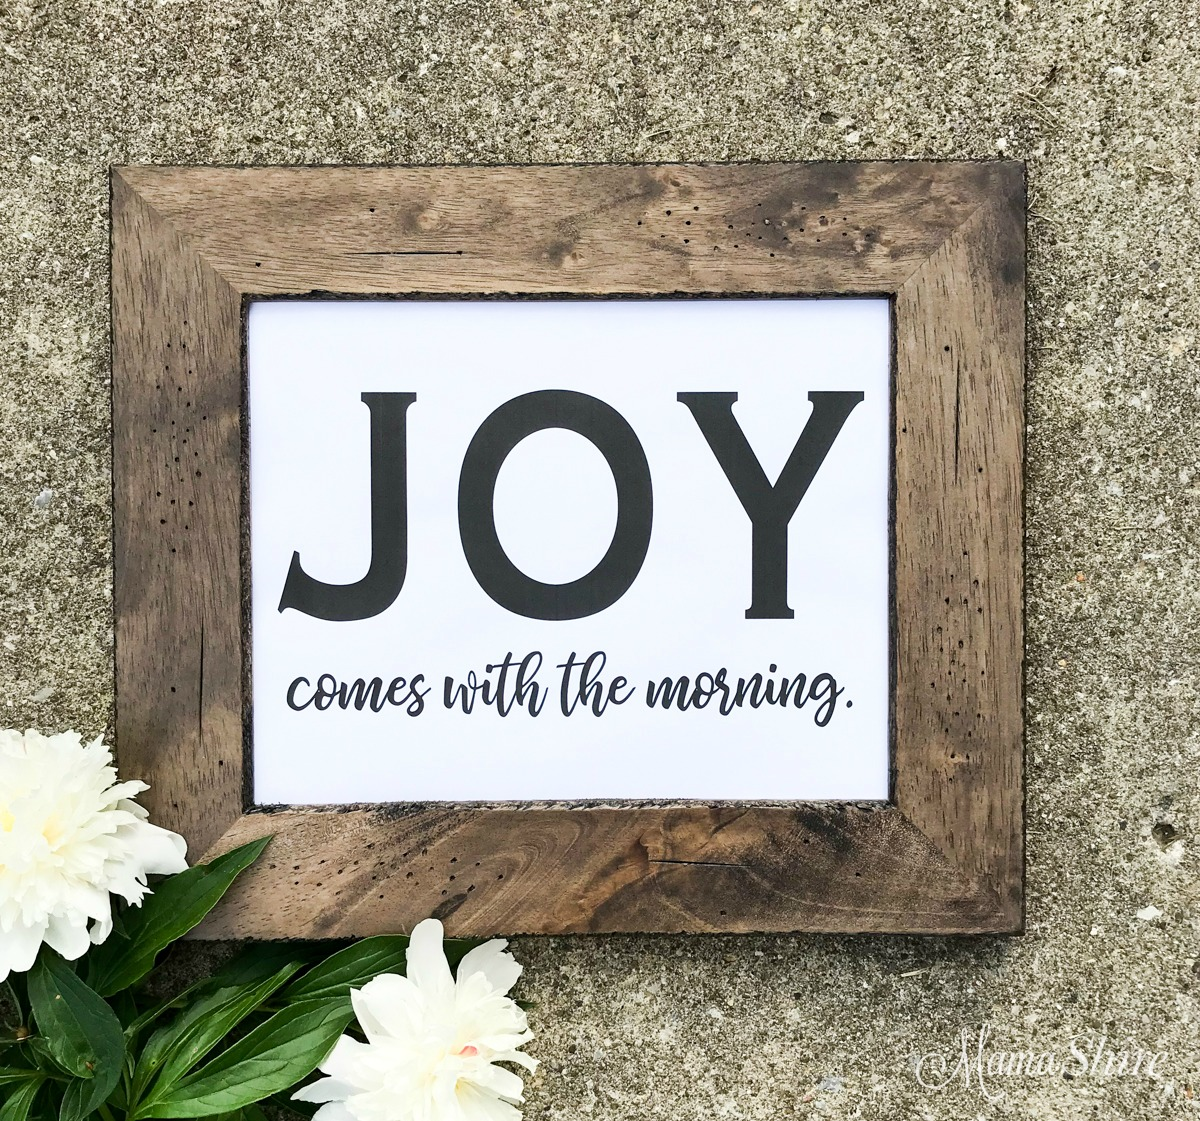 Printable PDF of Joy comes with the morning.